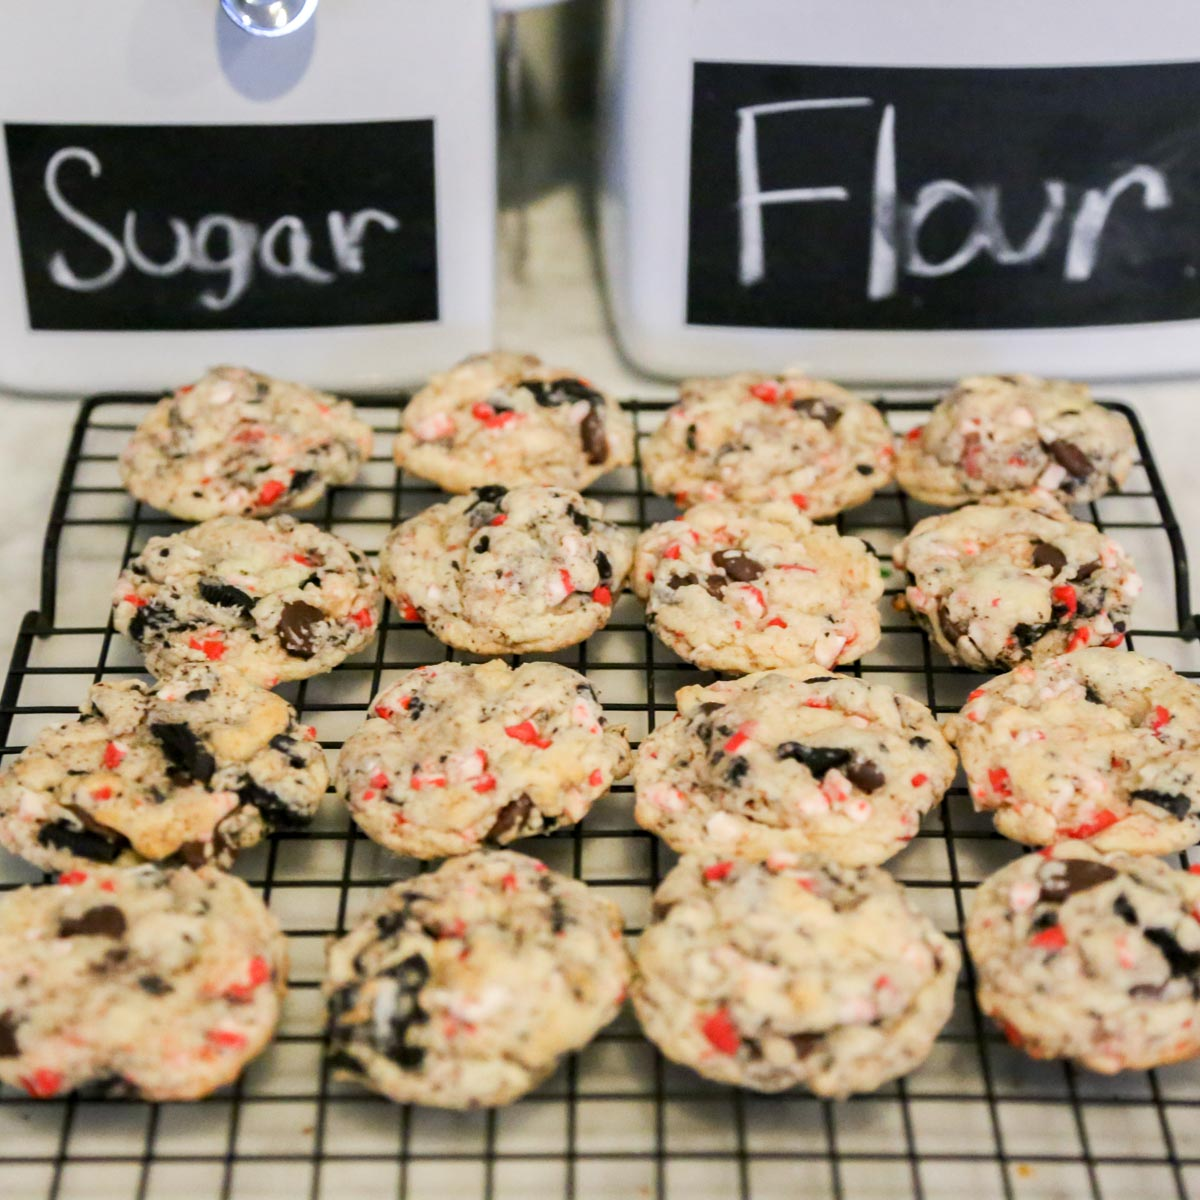 Oreo Peppermint Crunch Cookies from Smocked Auctions Aunt Ana #12DaysOfChristmasCookies